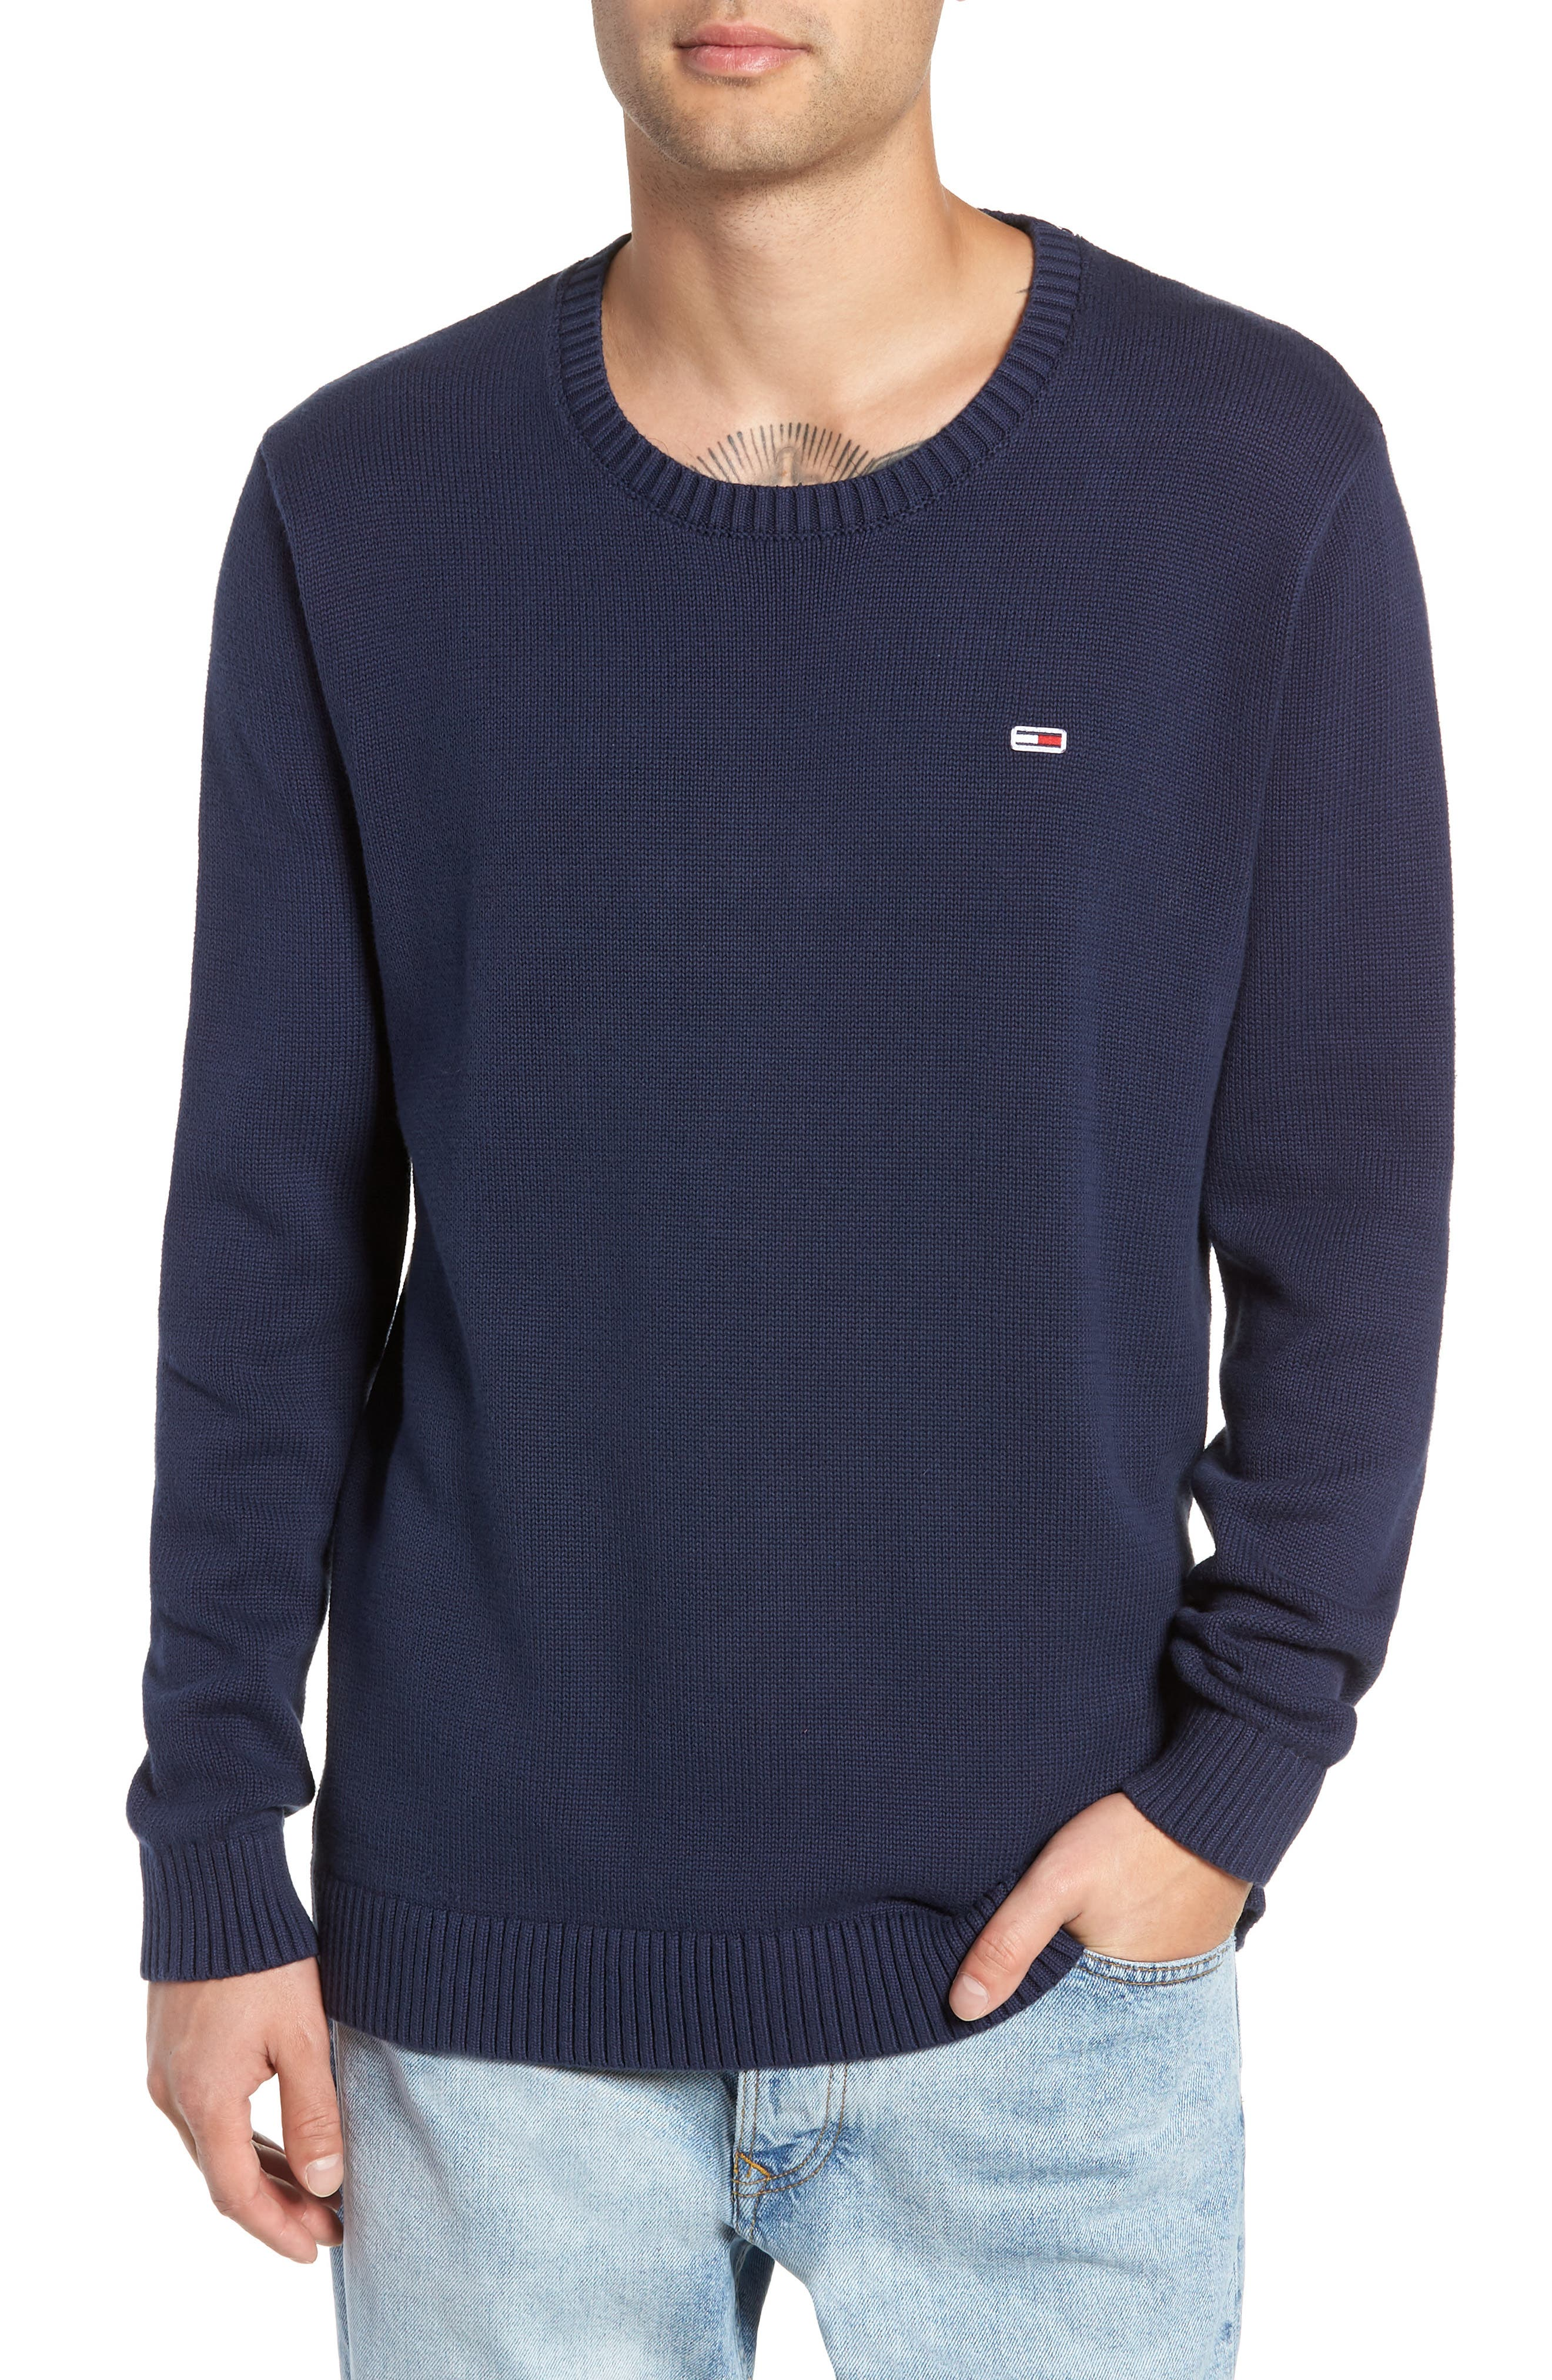 TJM Tommy Classics Sweater,                         Main,                         color, BLACK IRIS